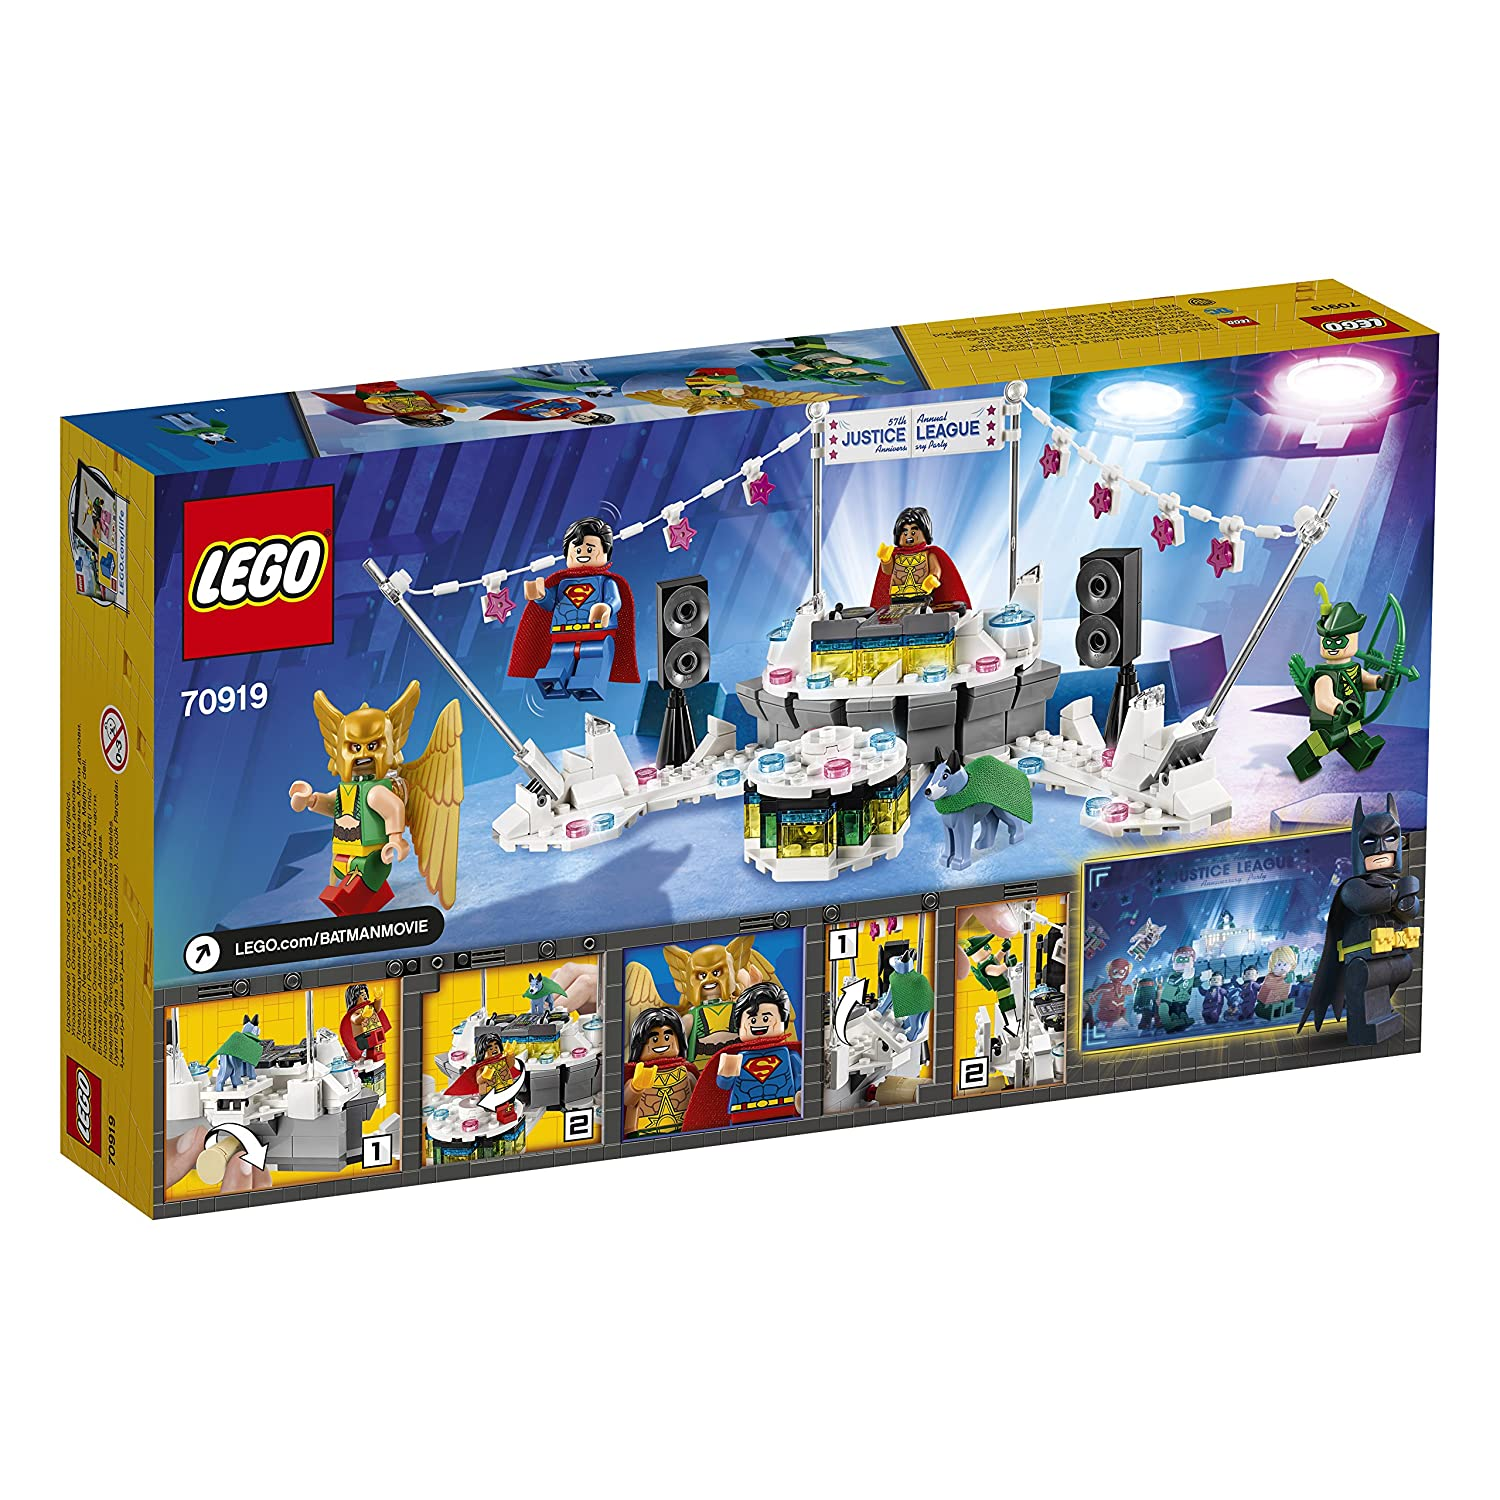 sh461 NEW LEGO HAWKGIRL FROM SET 70919 JUSTICE LEAGUE